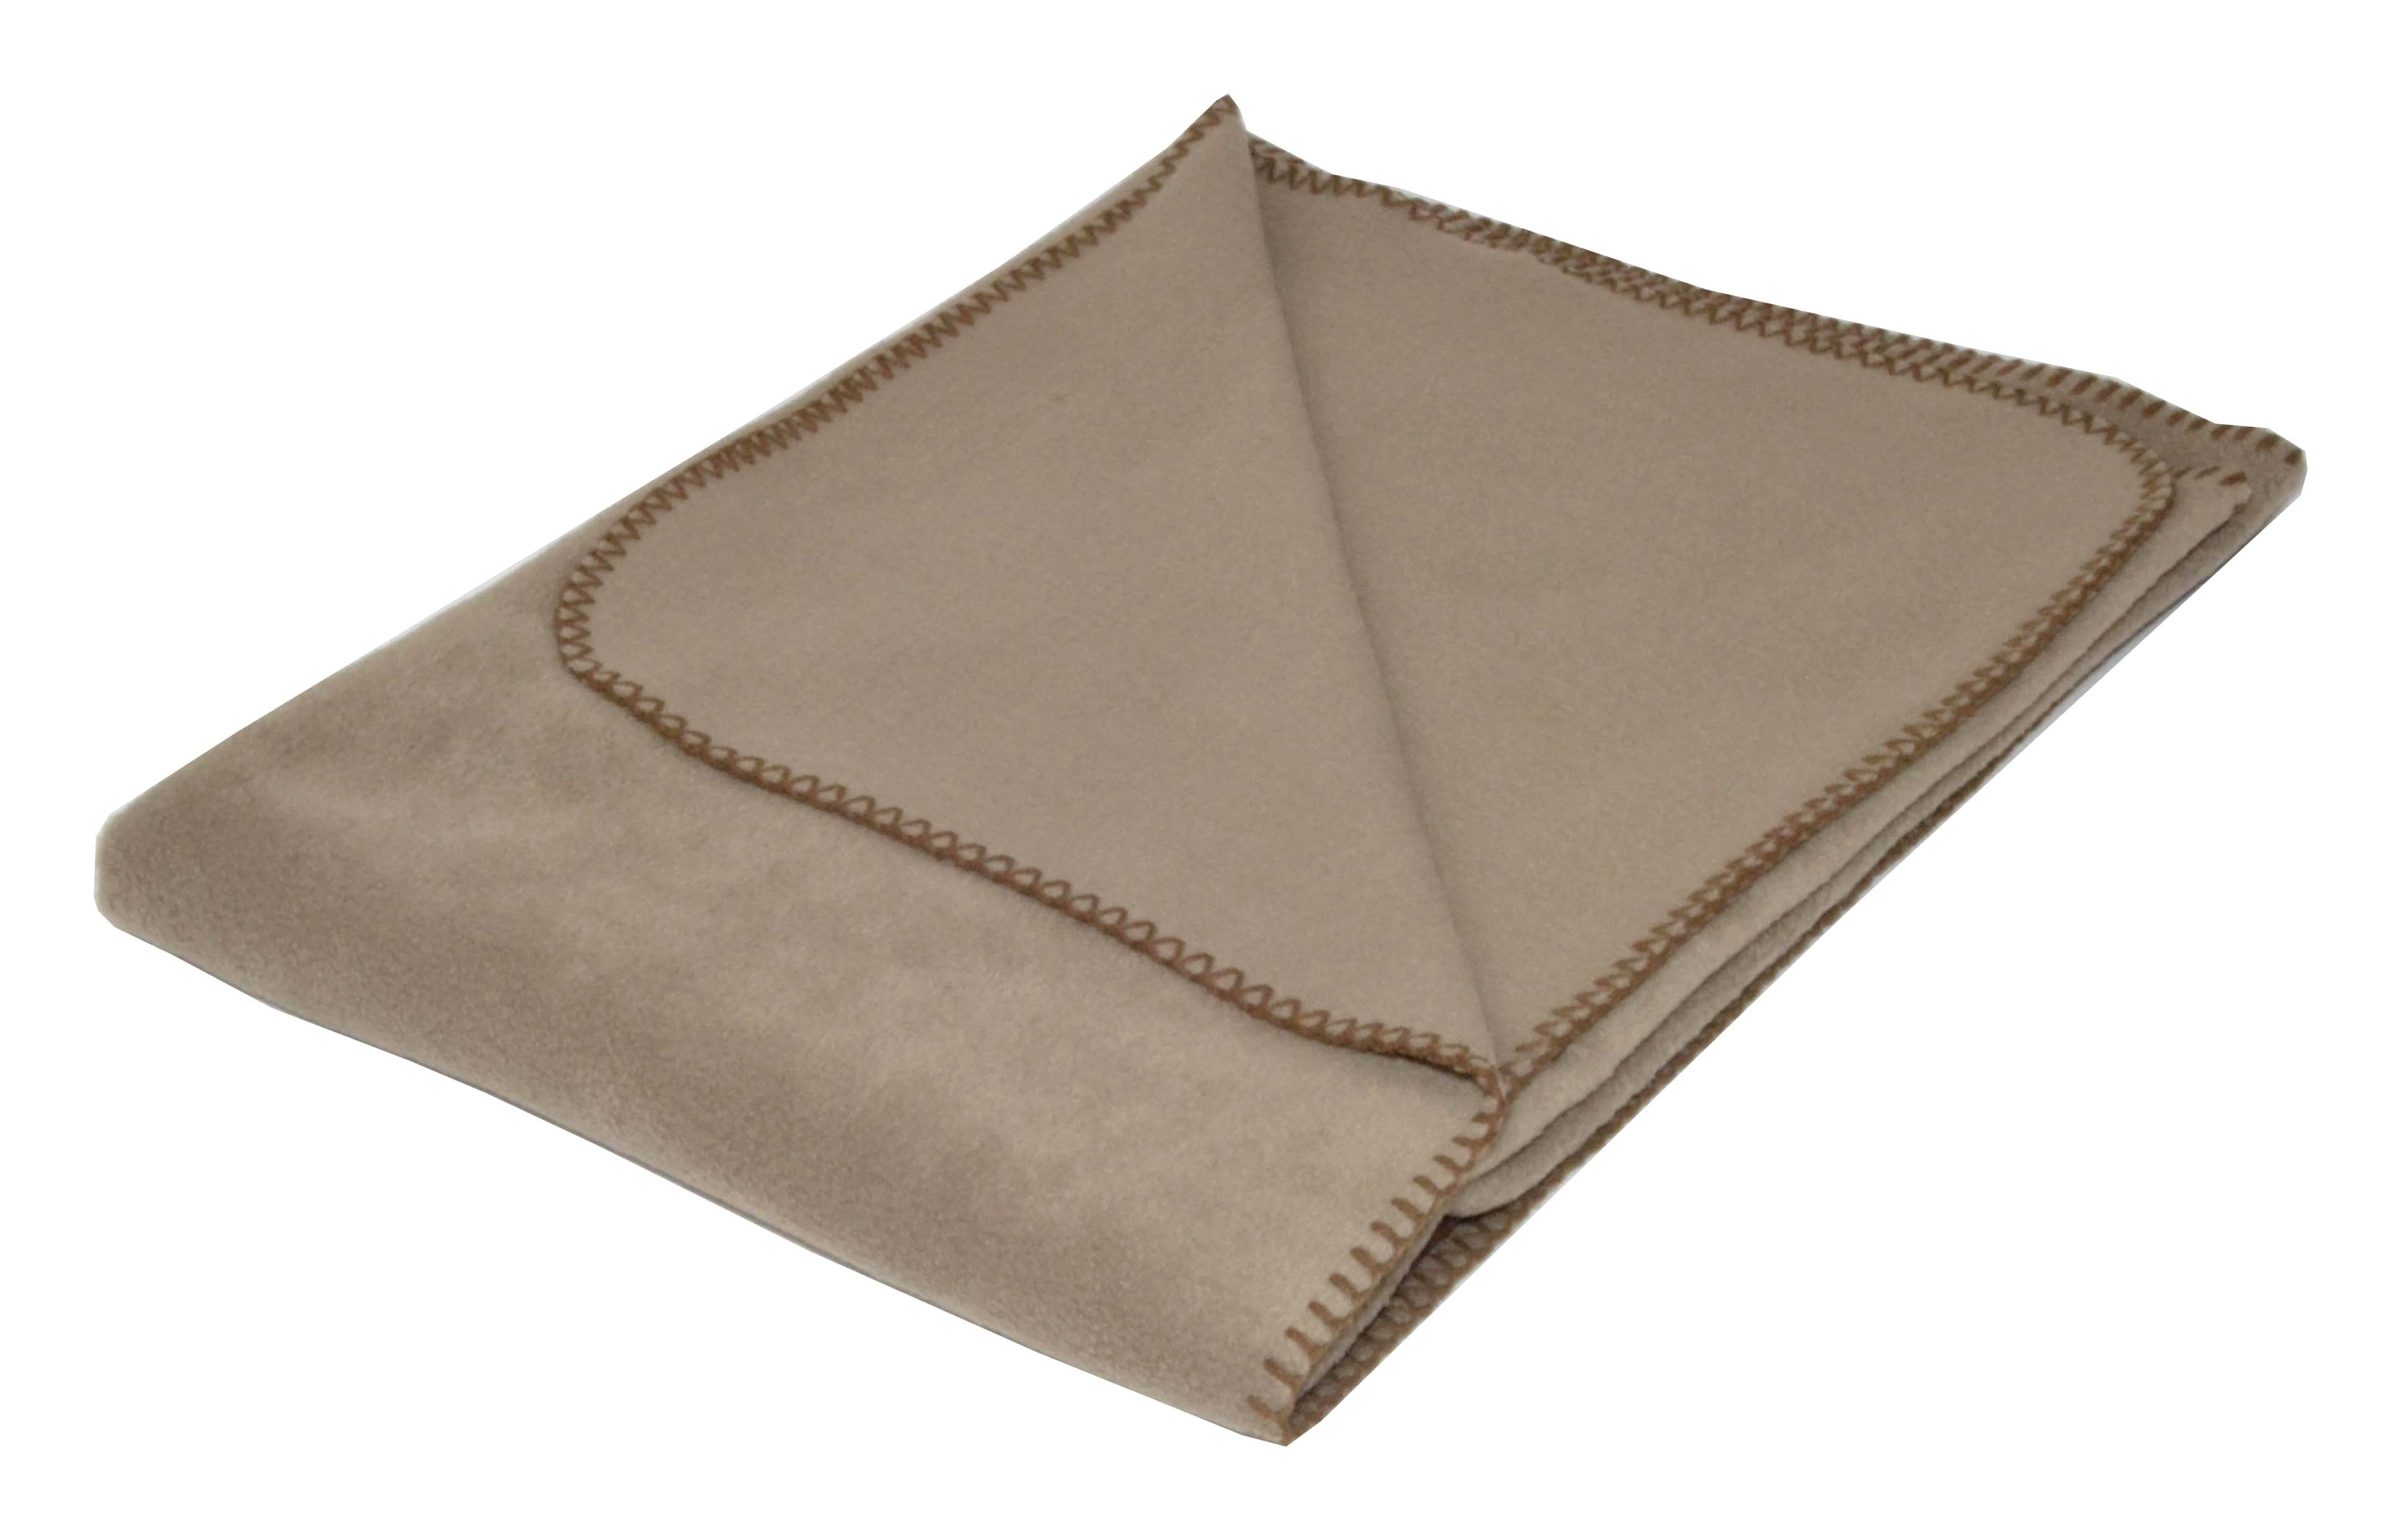 Snuggle Blankets New Camel